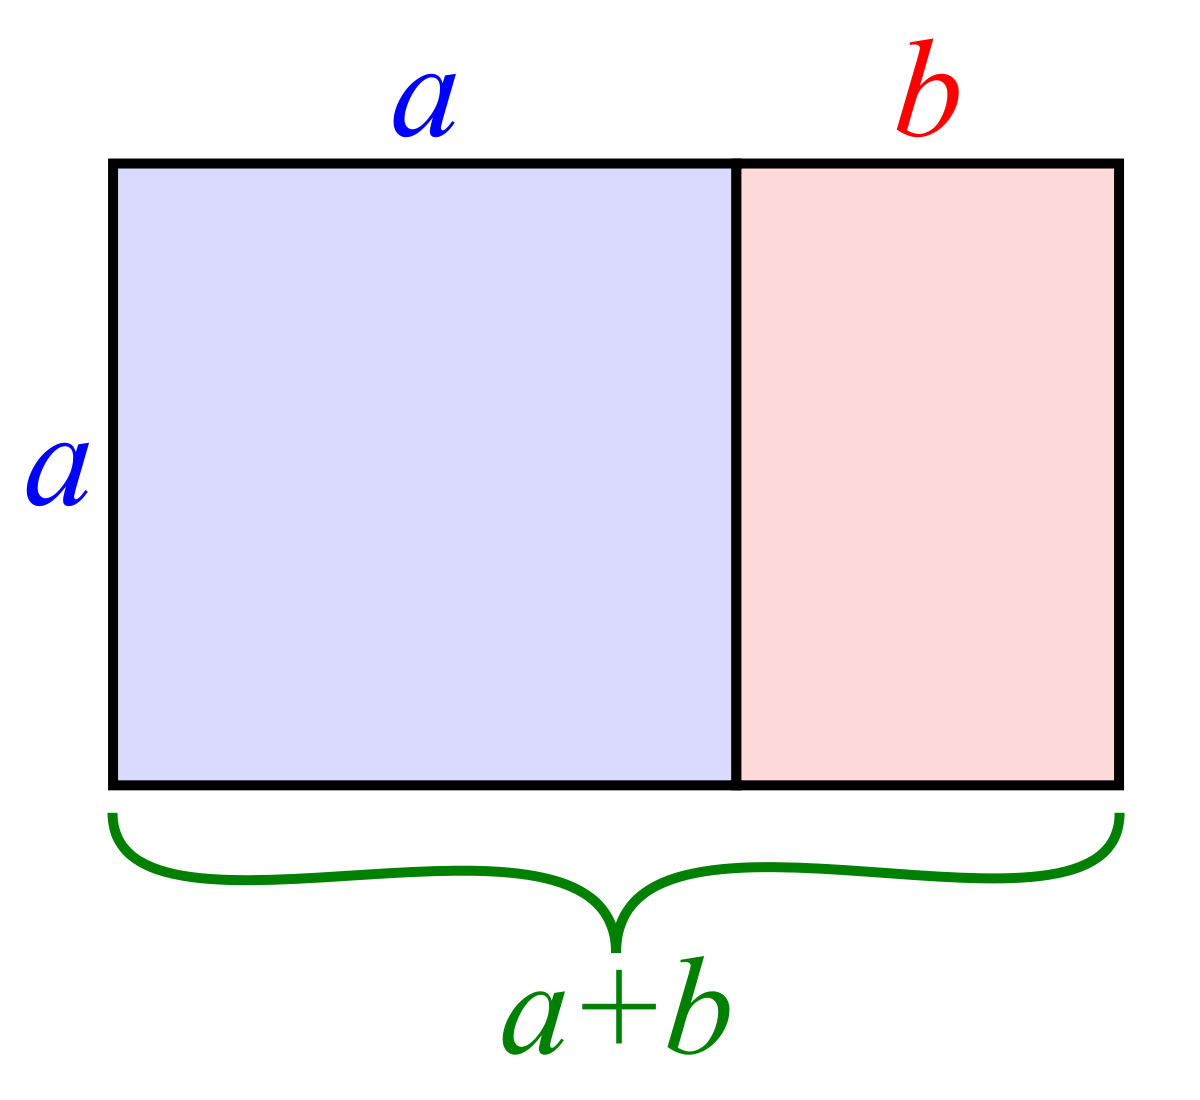 golden ratio, golden rectangle wikipedia #30813